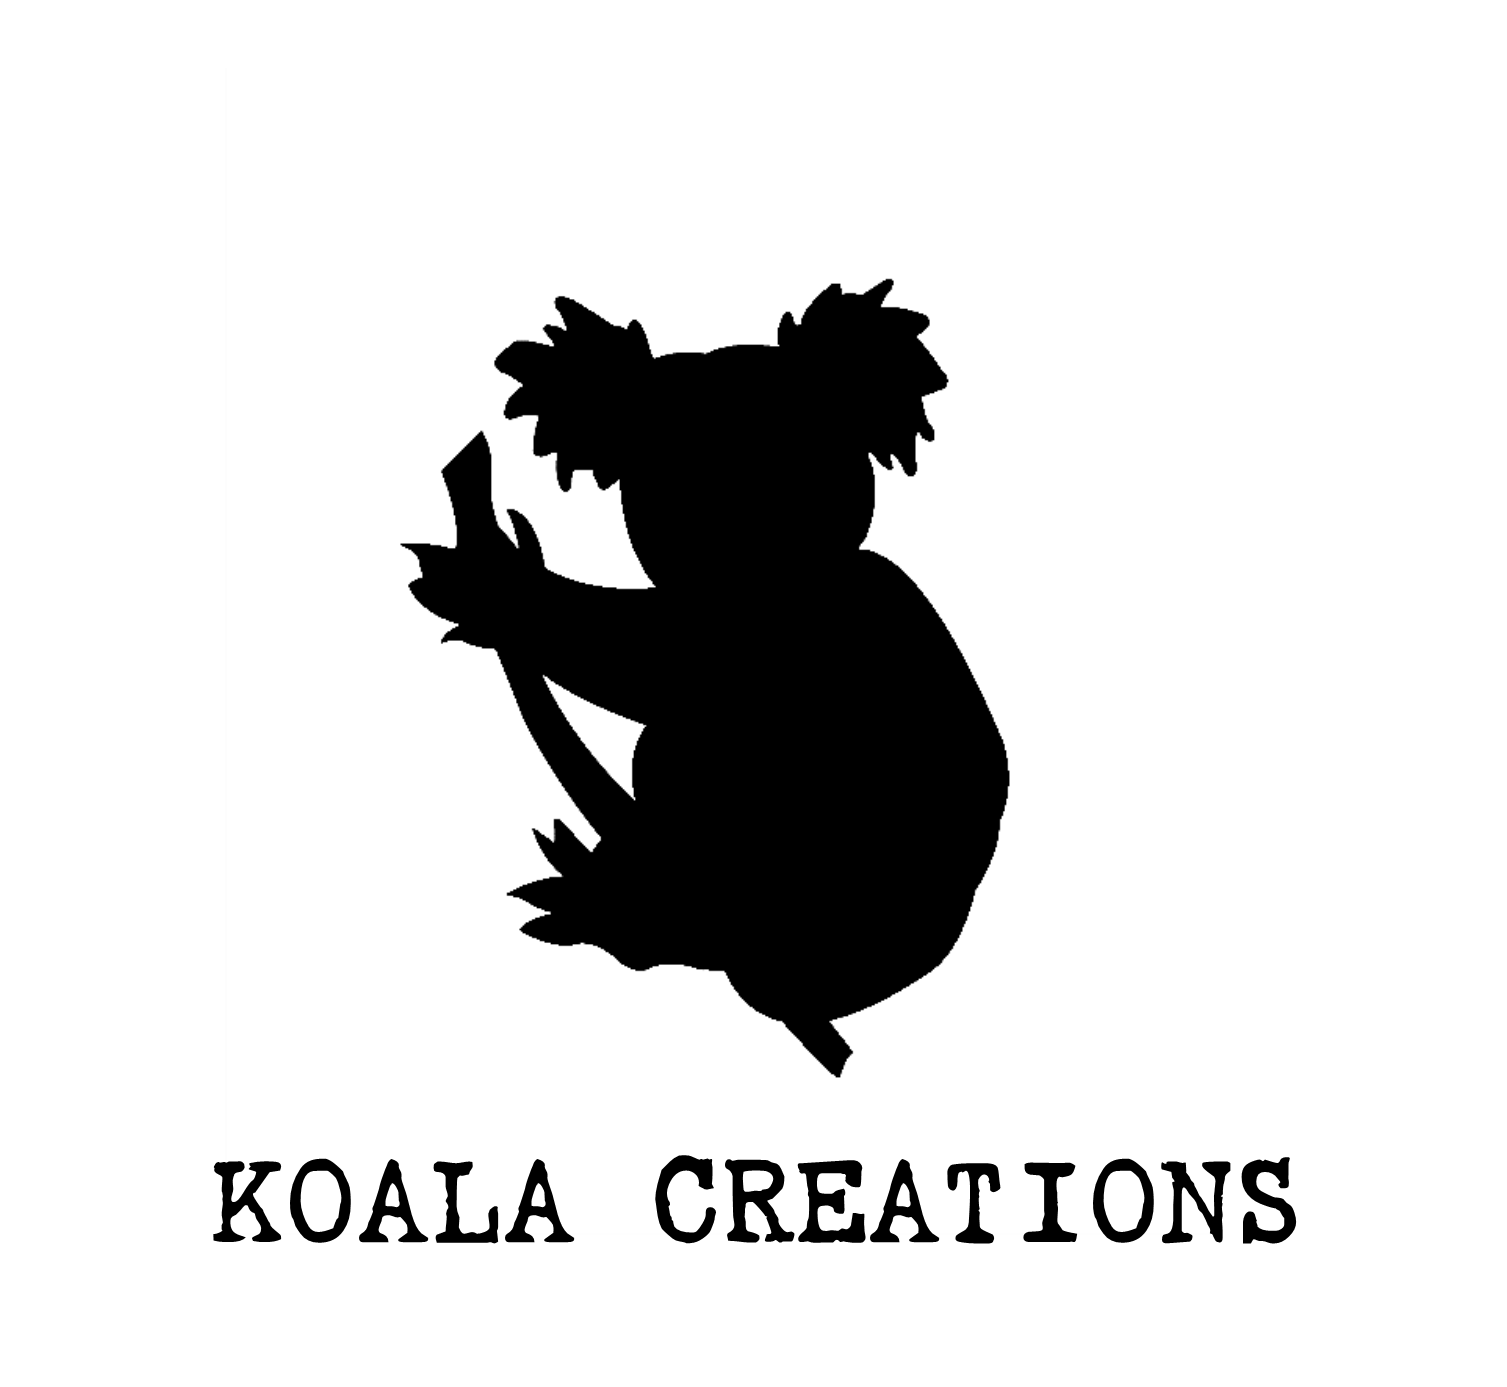 KOALACREATIONS